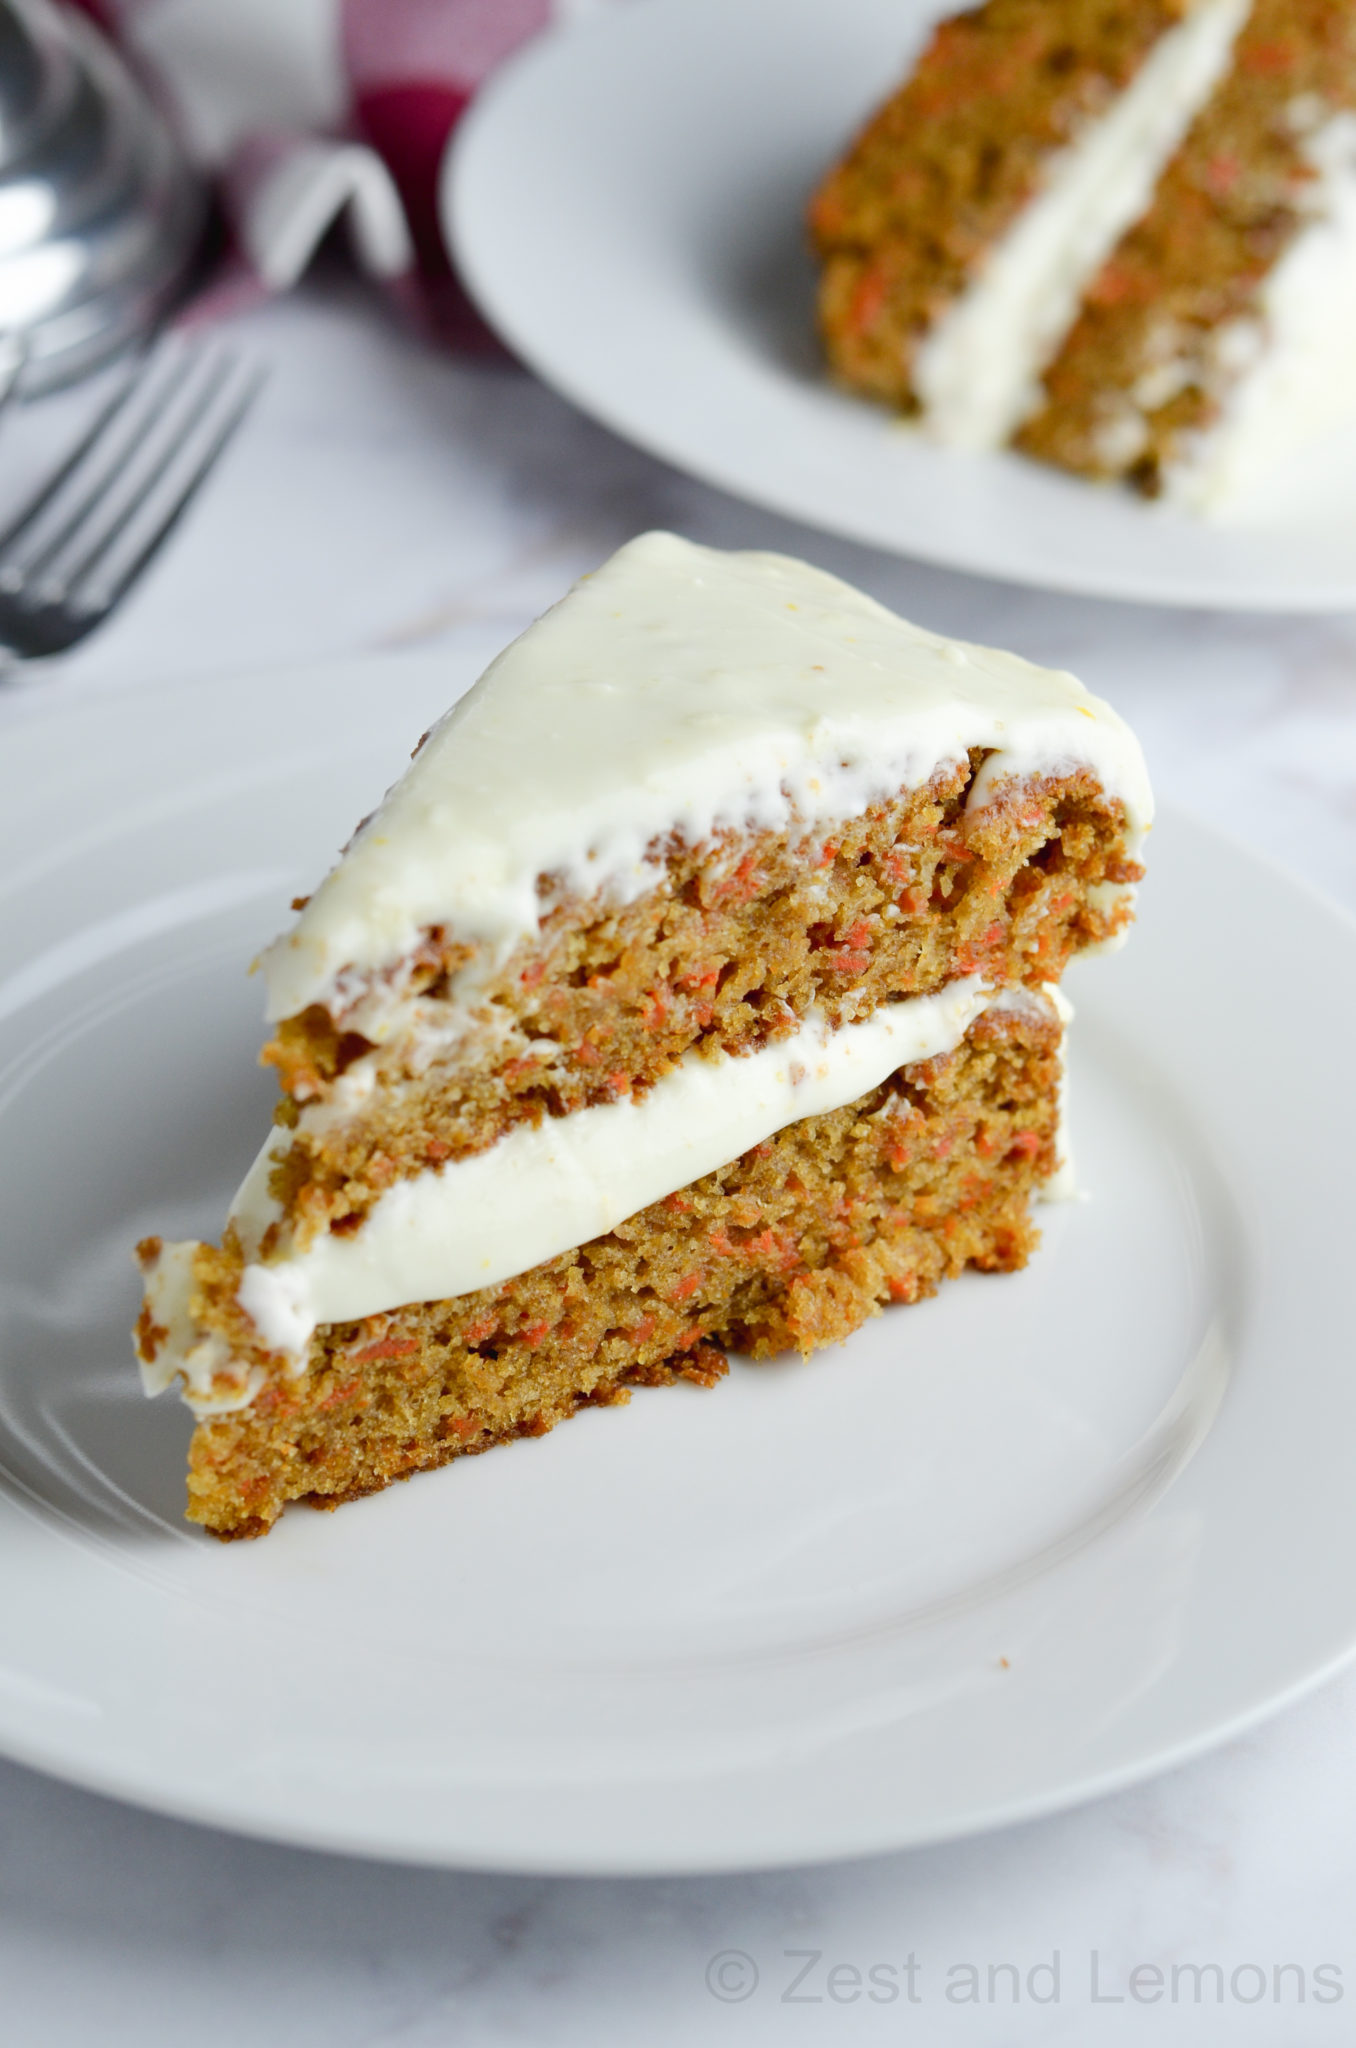 Gluten Free Carrot Cake with Orange Cream Cheese Frosting